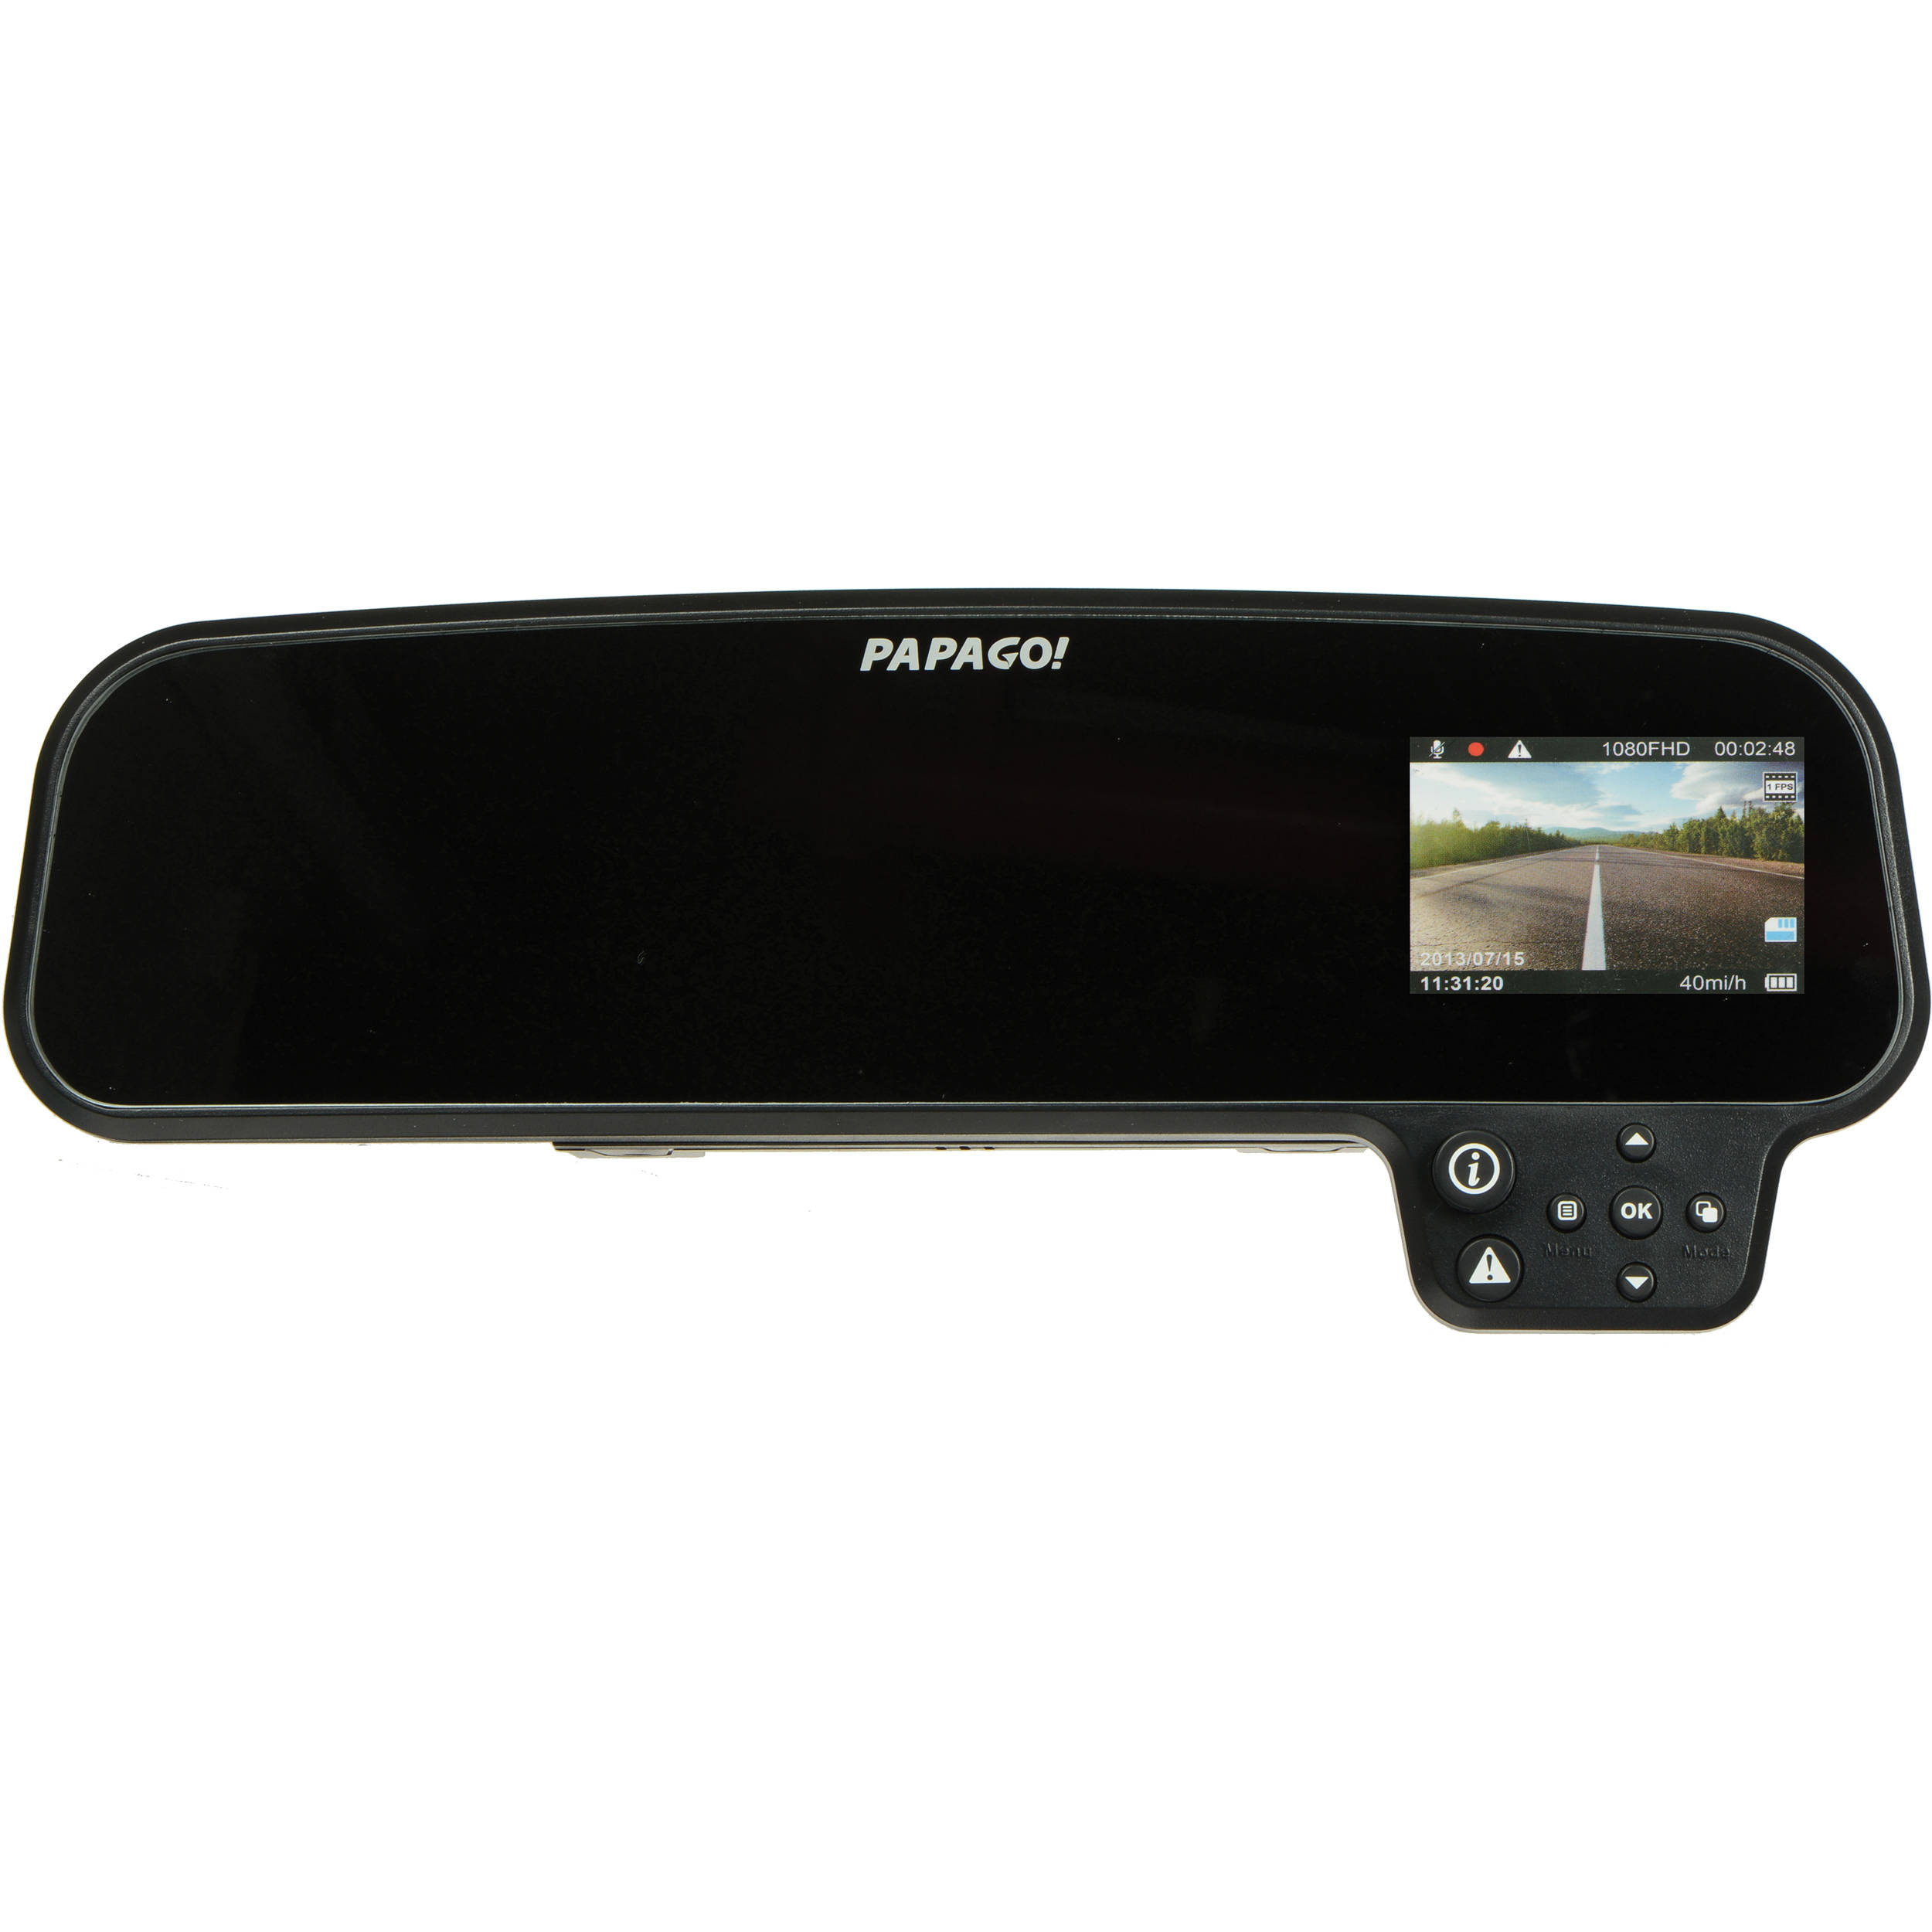 papago gosafe 260 rear view mirror dash camera gs260 us b h